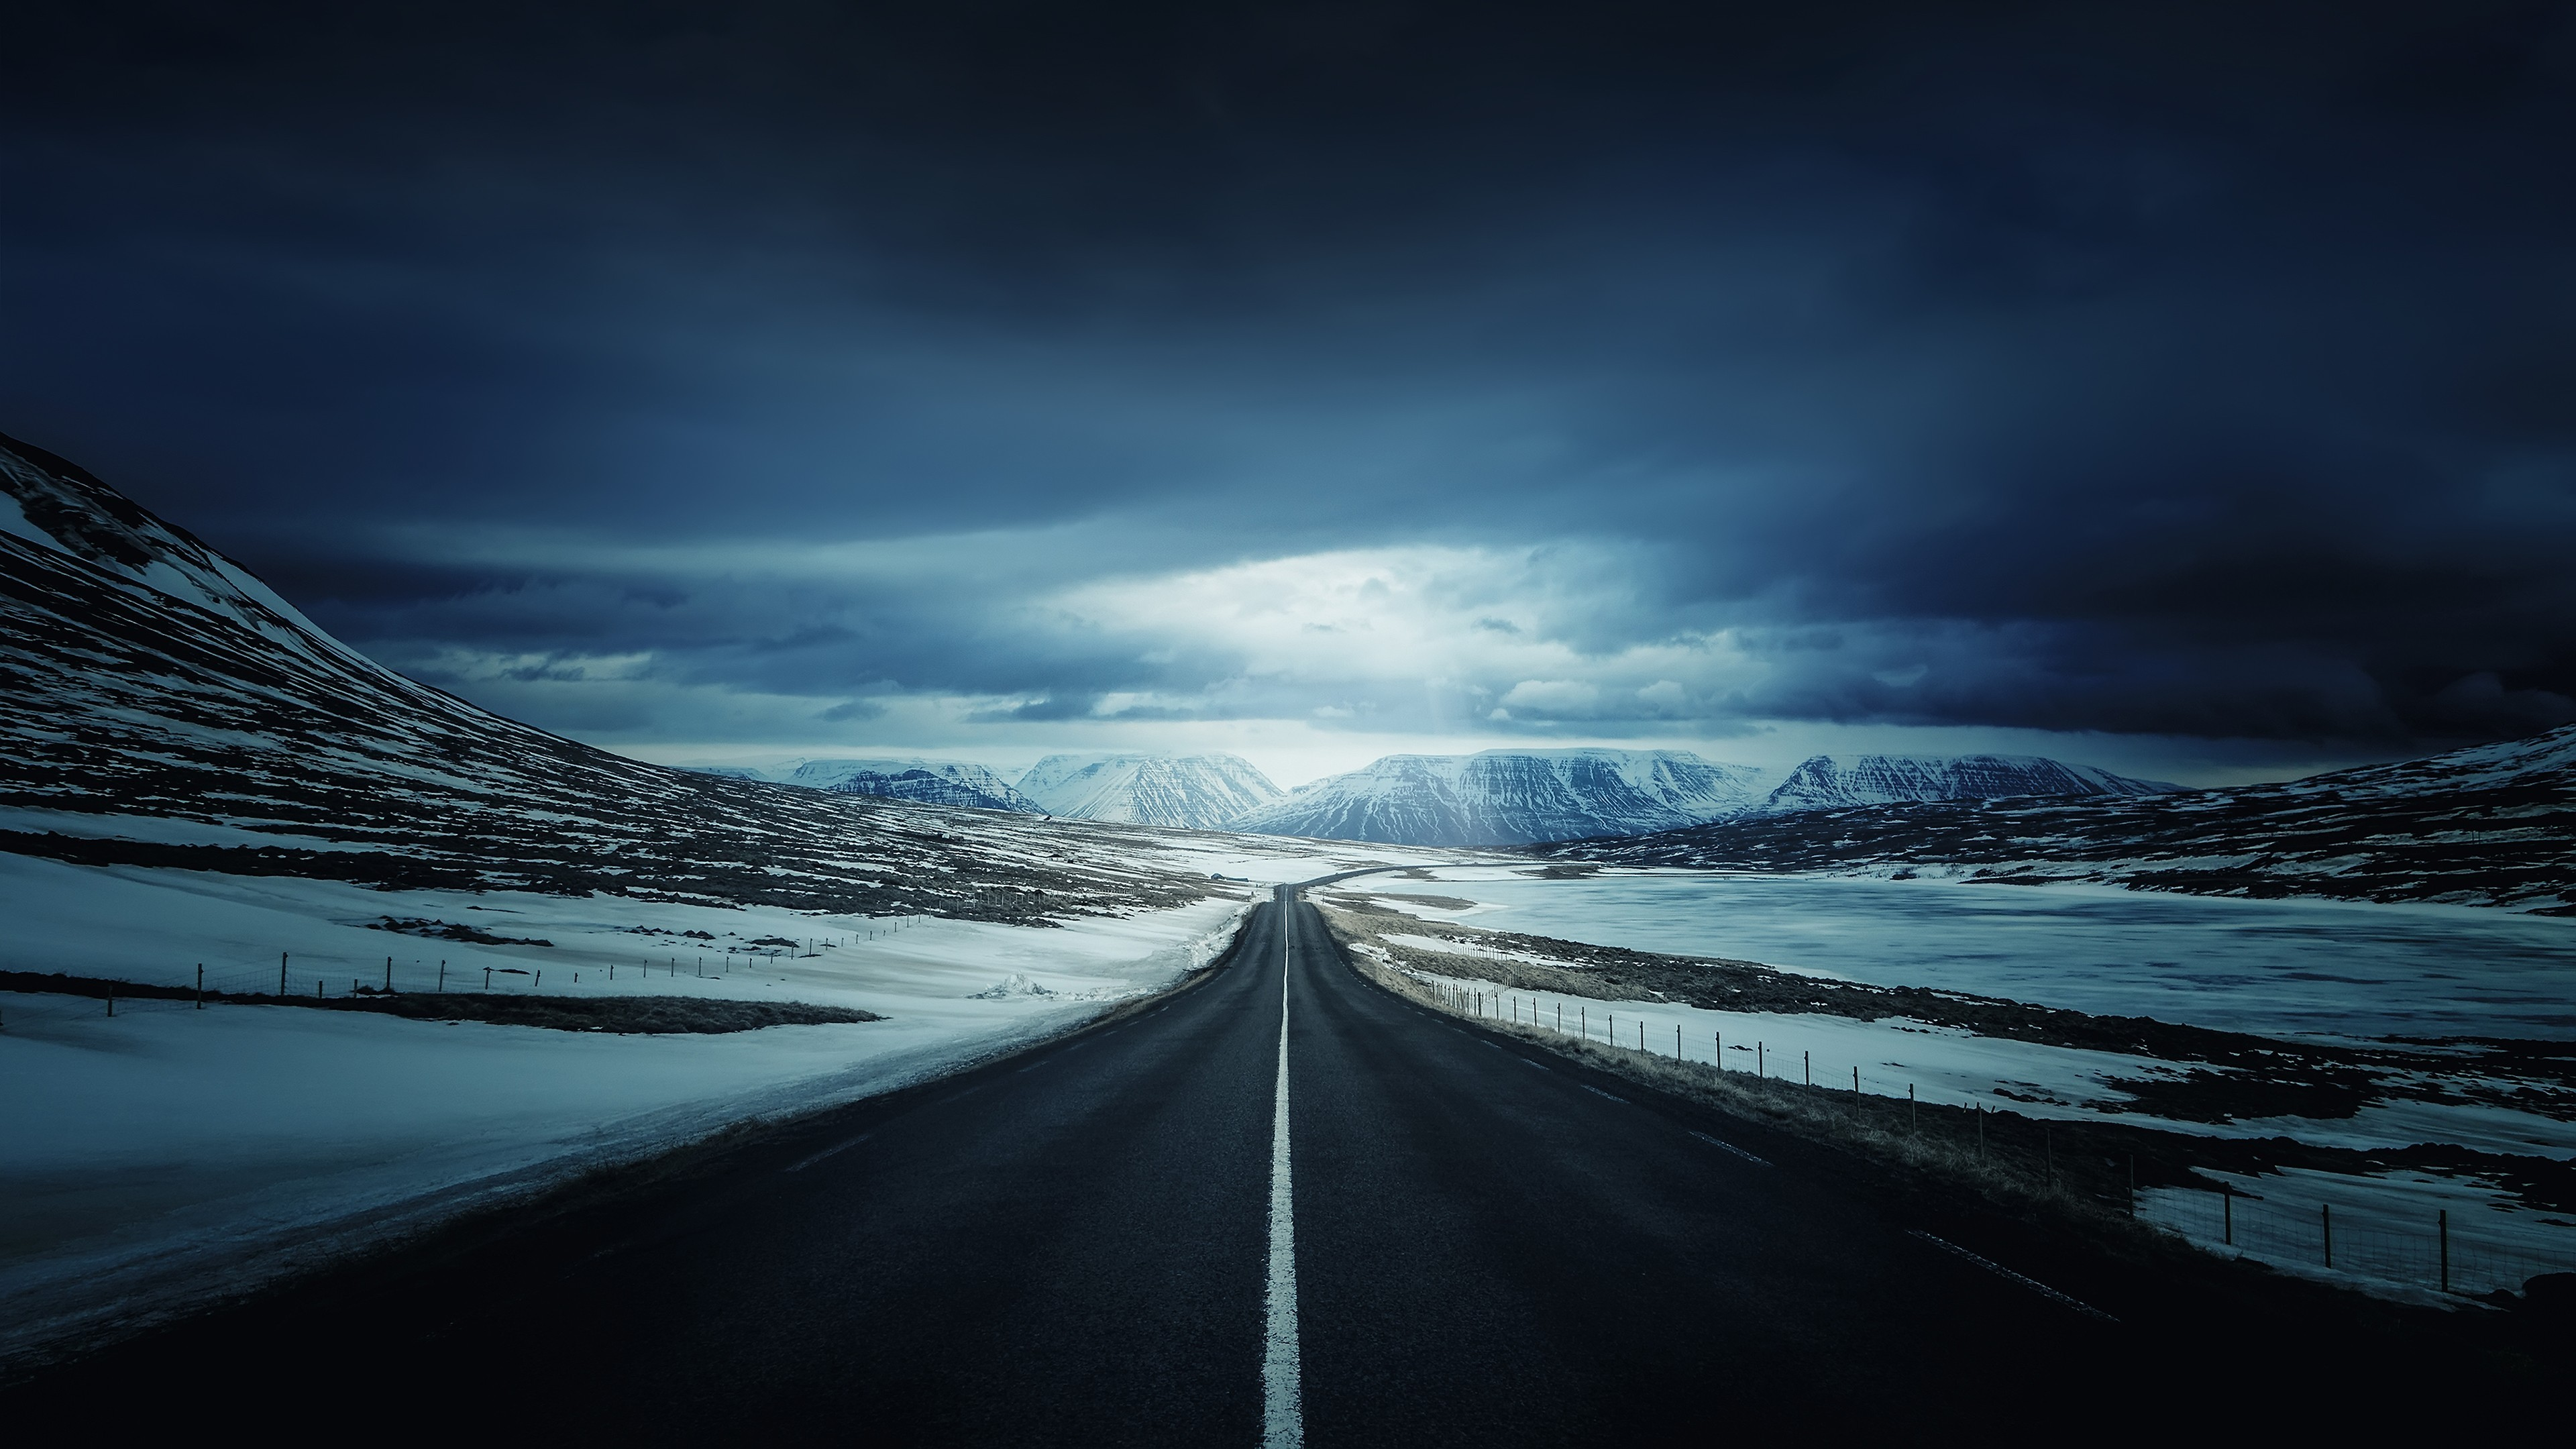 alone road snow cold open sky mountains 4k 1540135641 - Alone Road Snow Cold Open Sky Mountains 4k - snow wallpapers, sky wallpapers, road wallpapers, nature wallpapers, mountains wallpapers, landscape wallpapers, hd-wallpapers, clouds wallpapers, alone wallpapers, 4k-wallpapers